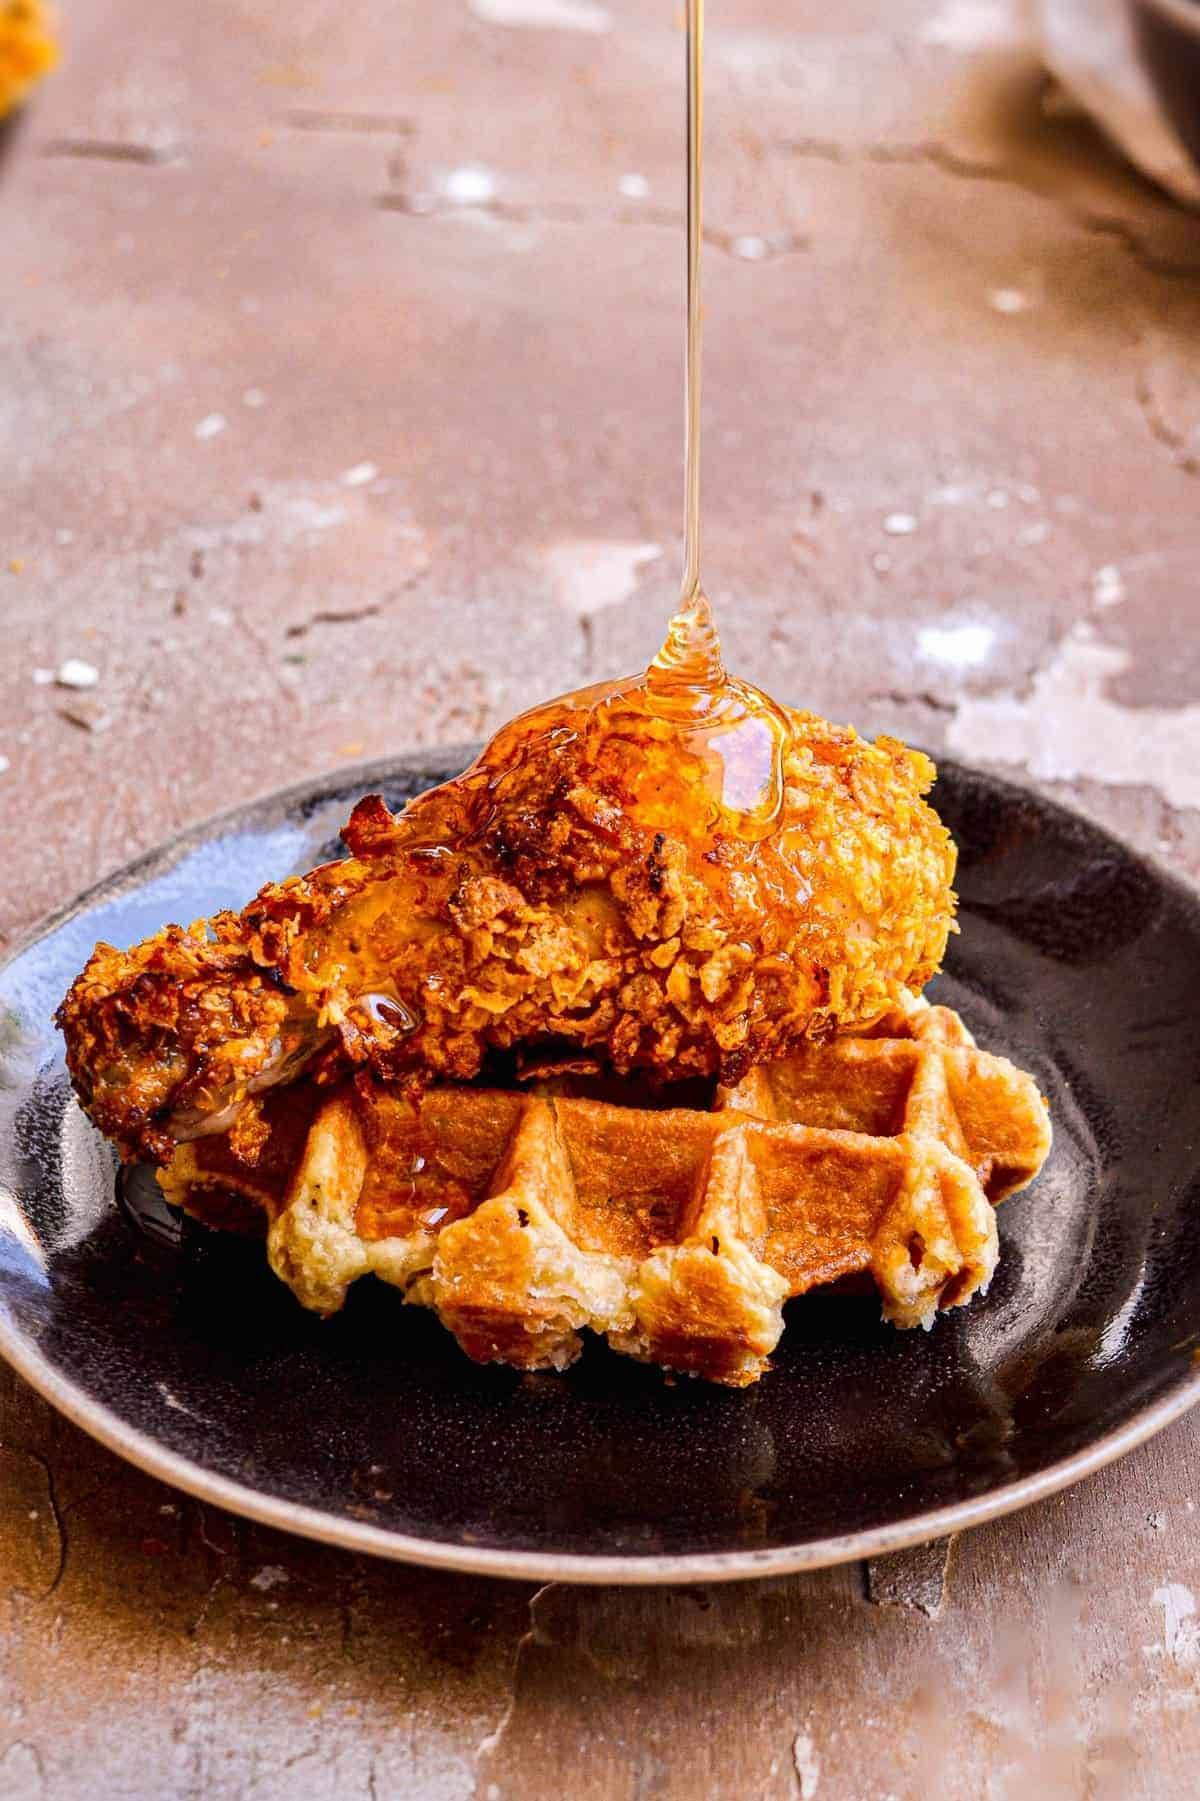 Honey being drizzled on Chicken and Waffles